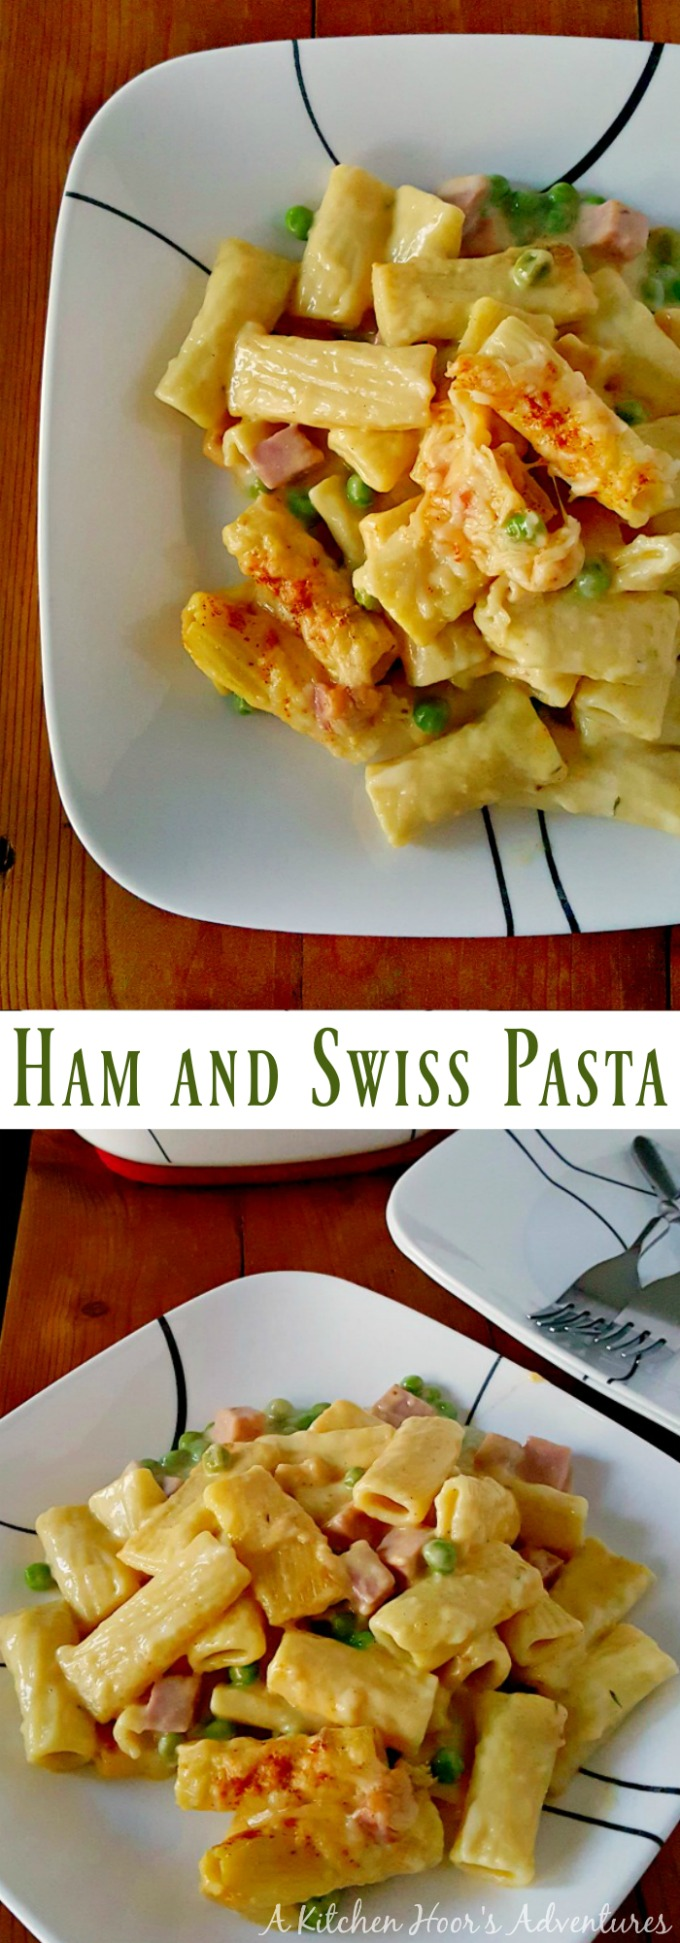 My fave, comfort food sanwich is turned into a delicious comfort food pasta casserole.  Ham and Swiss Pasta has all the flavors of the sandwich in an easy casserole that's sure to please the whole family.